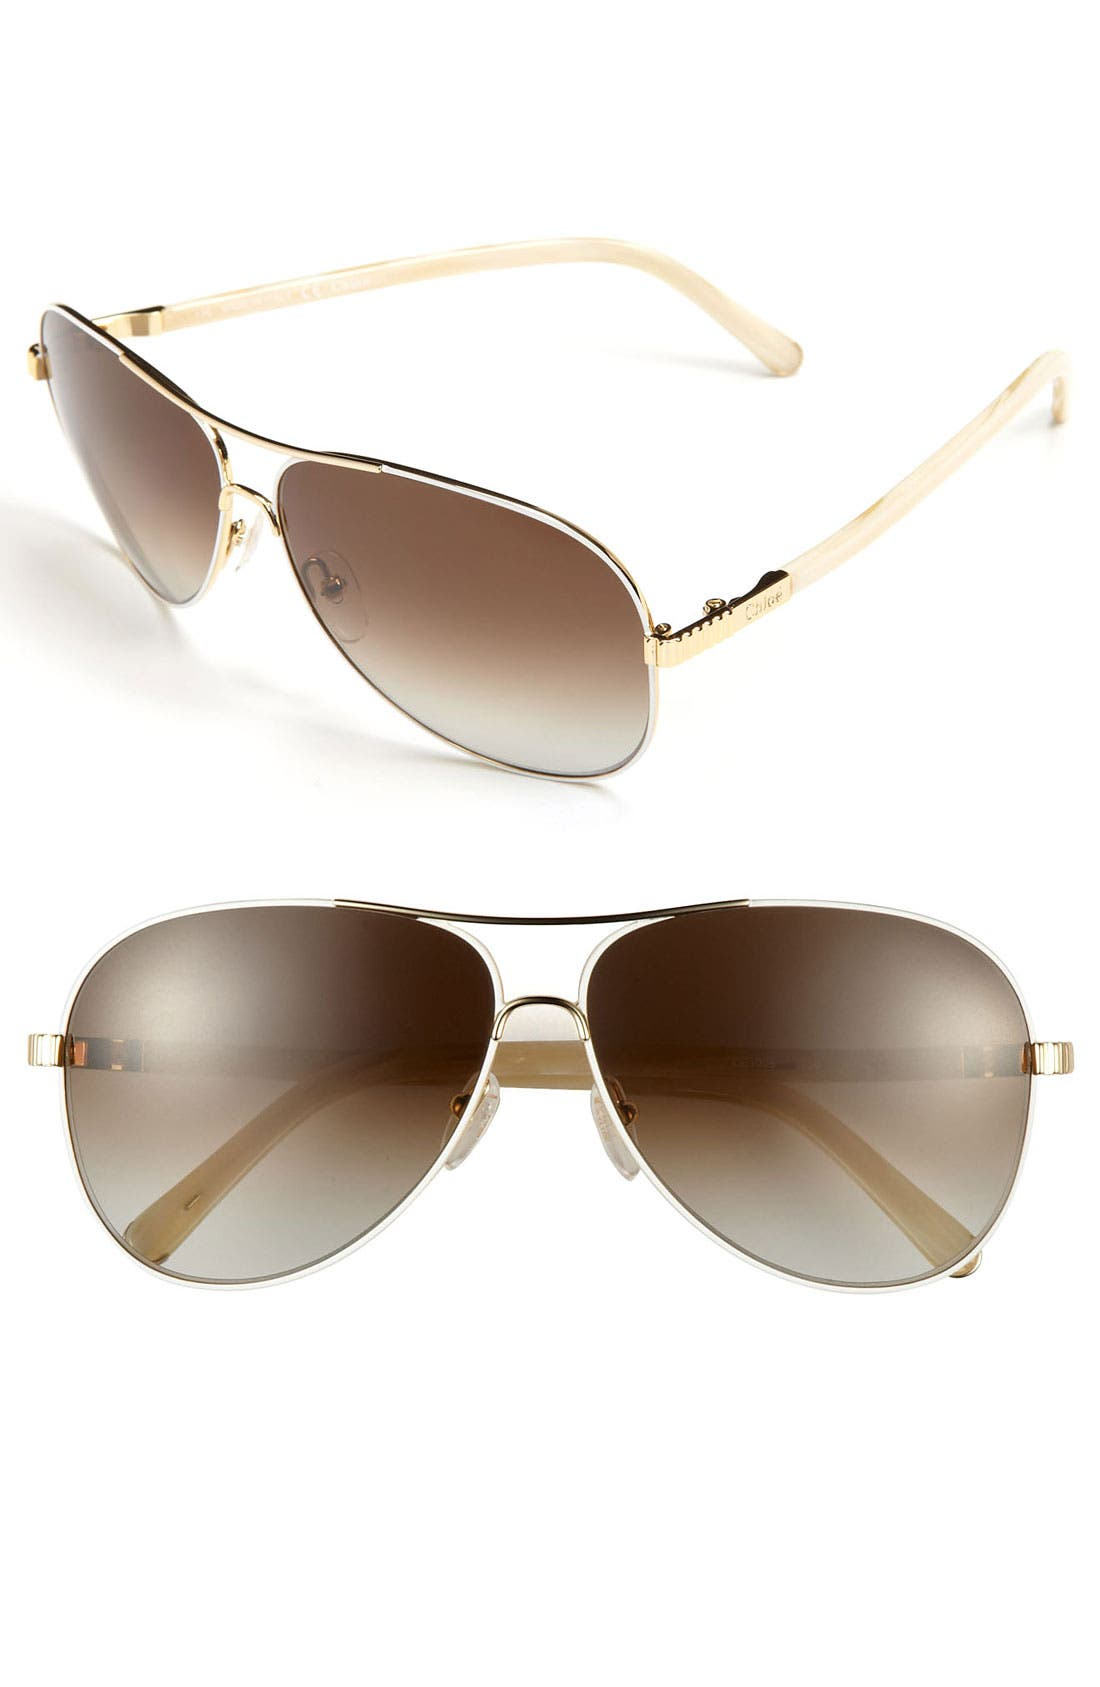 Main Image - Chloé 61mm Aviator Sunglasses